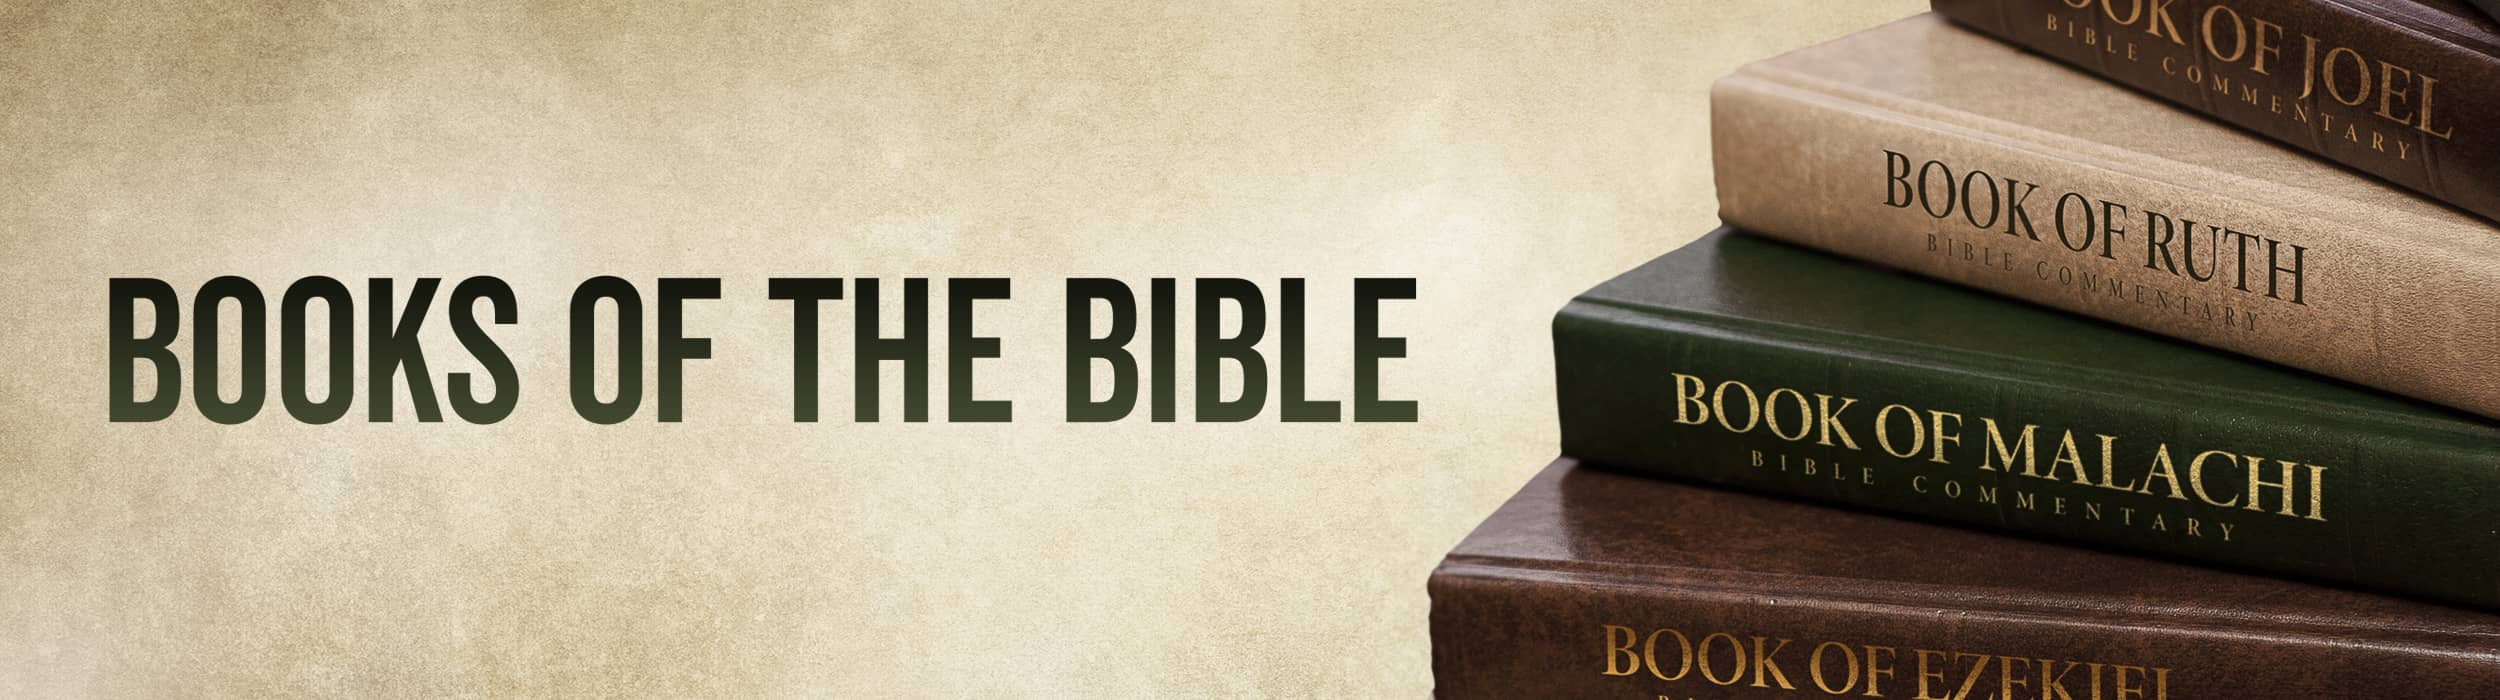 Online Bible Study Courses, Books of the Bible online courses